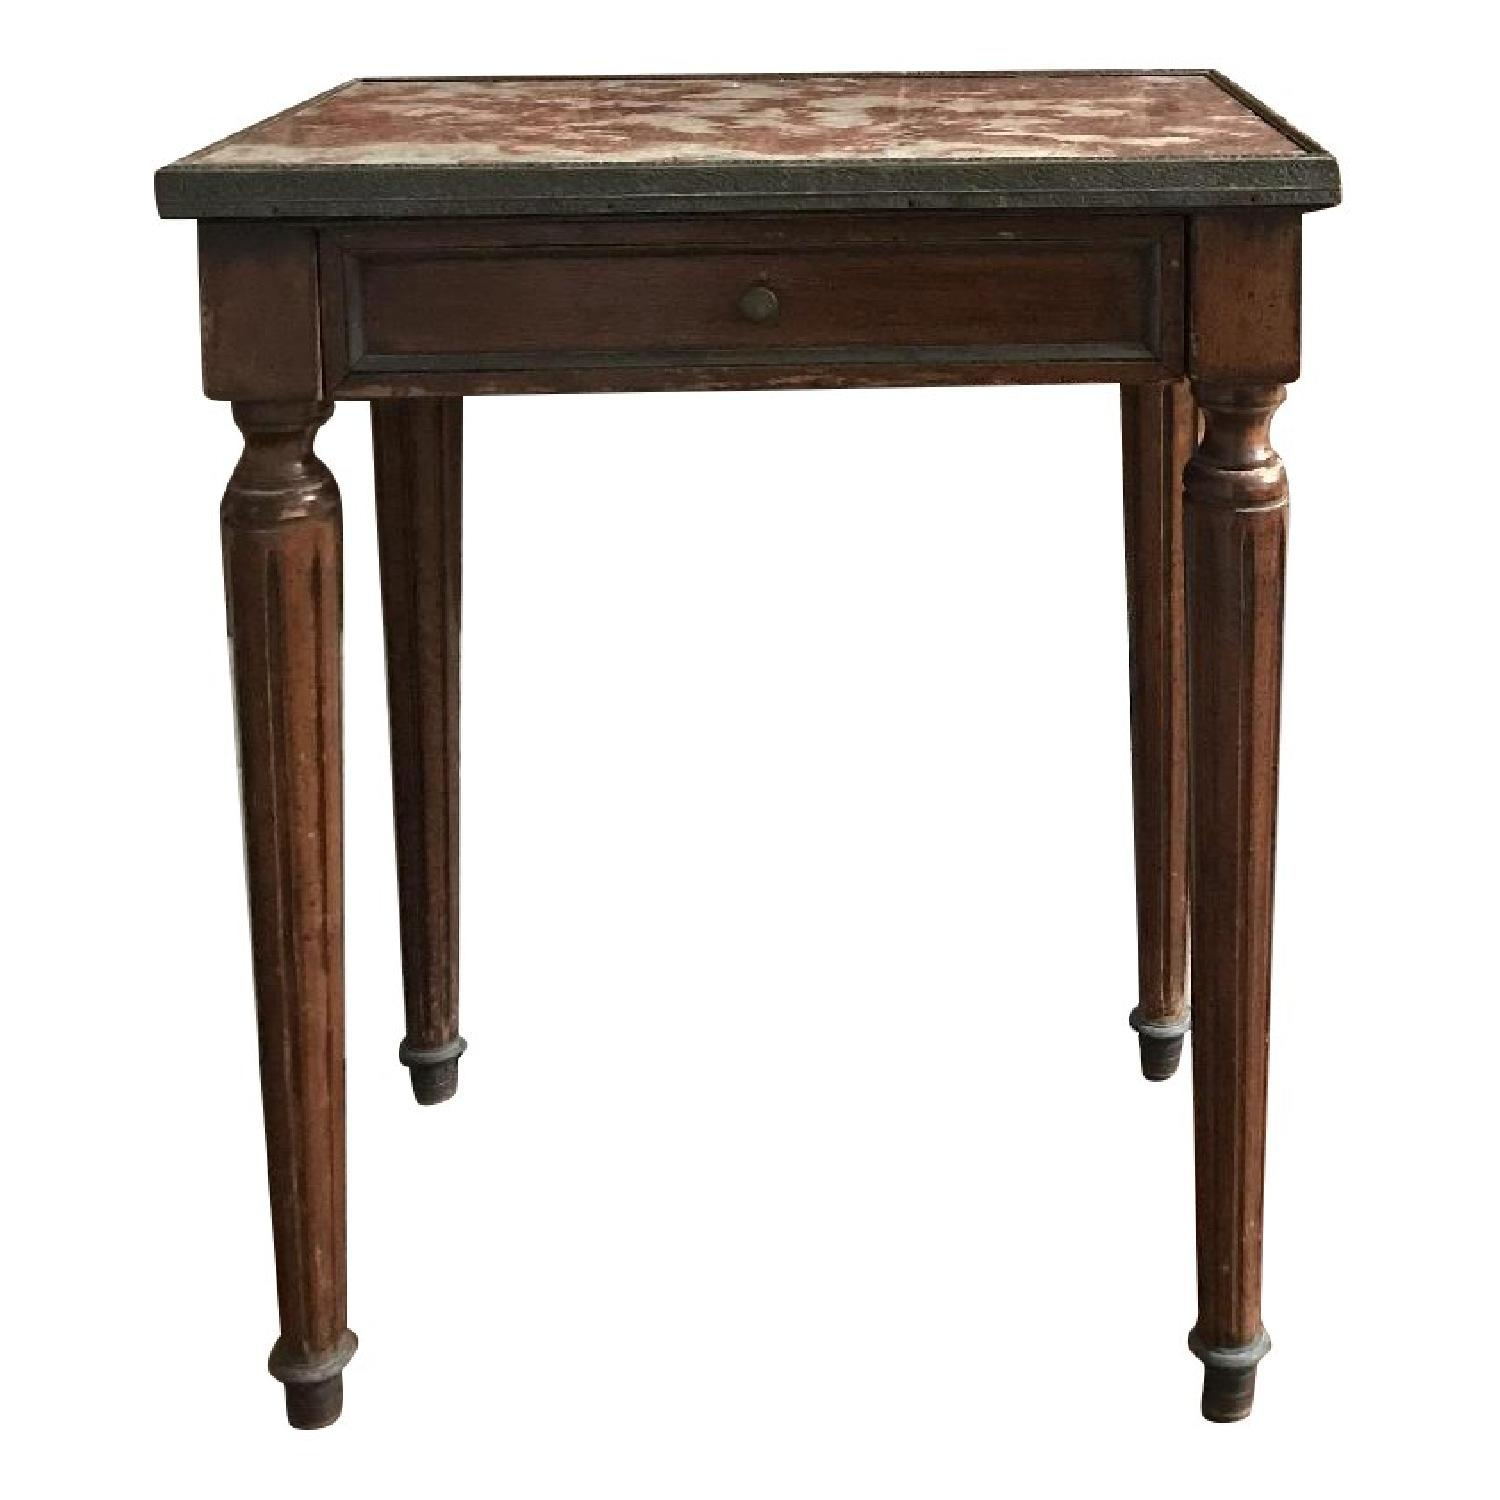 Danby Vintage Louis XIV Marble Top Side/End Table